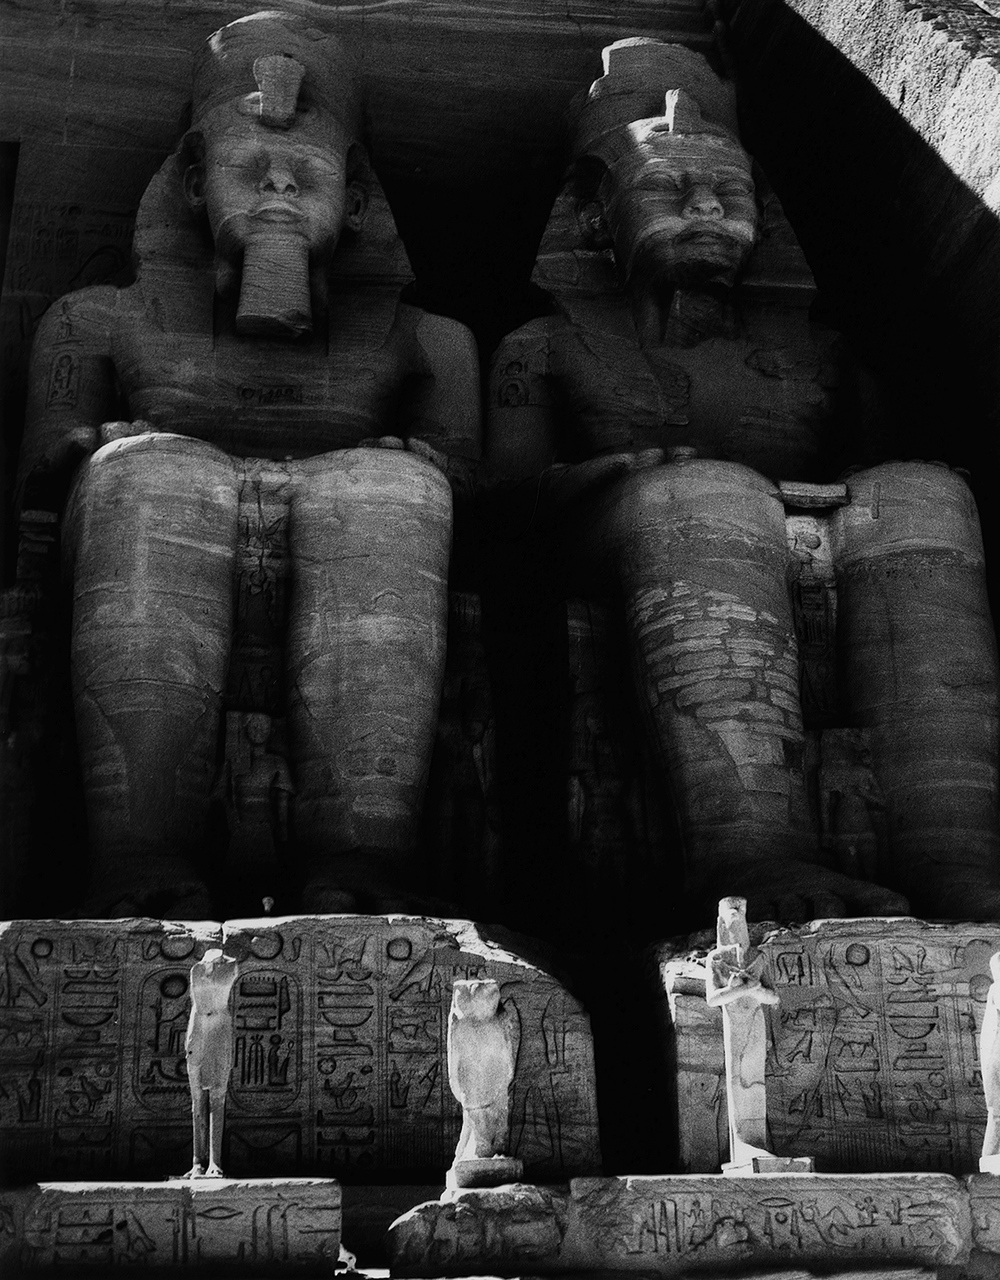 Two of four statues of Ramses II, Abu Simbel